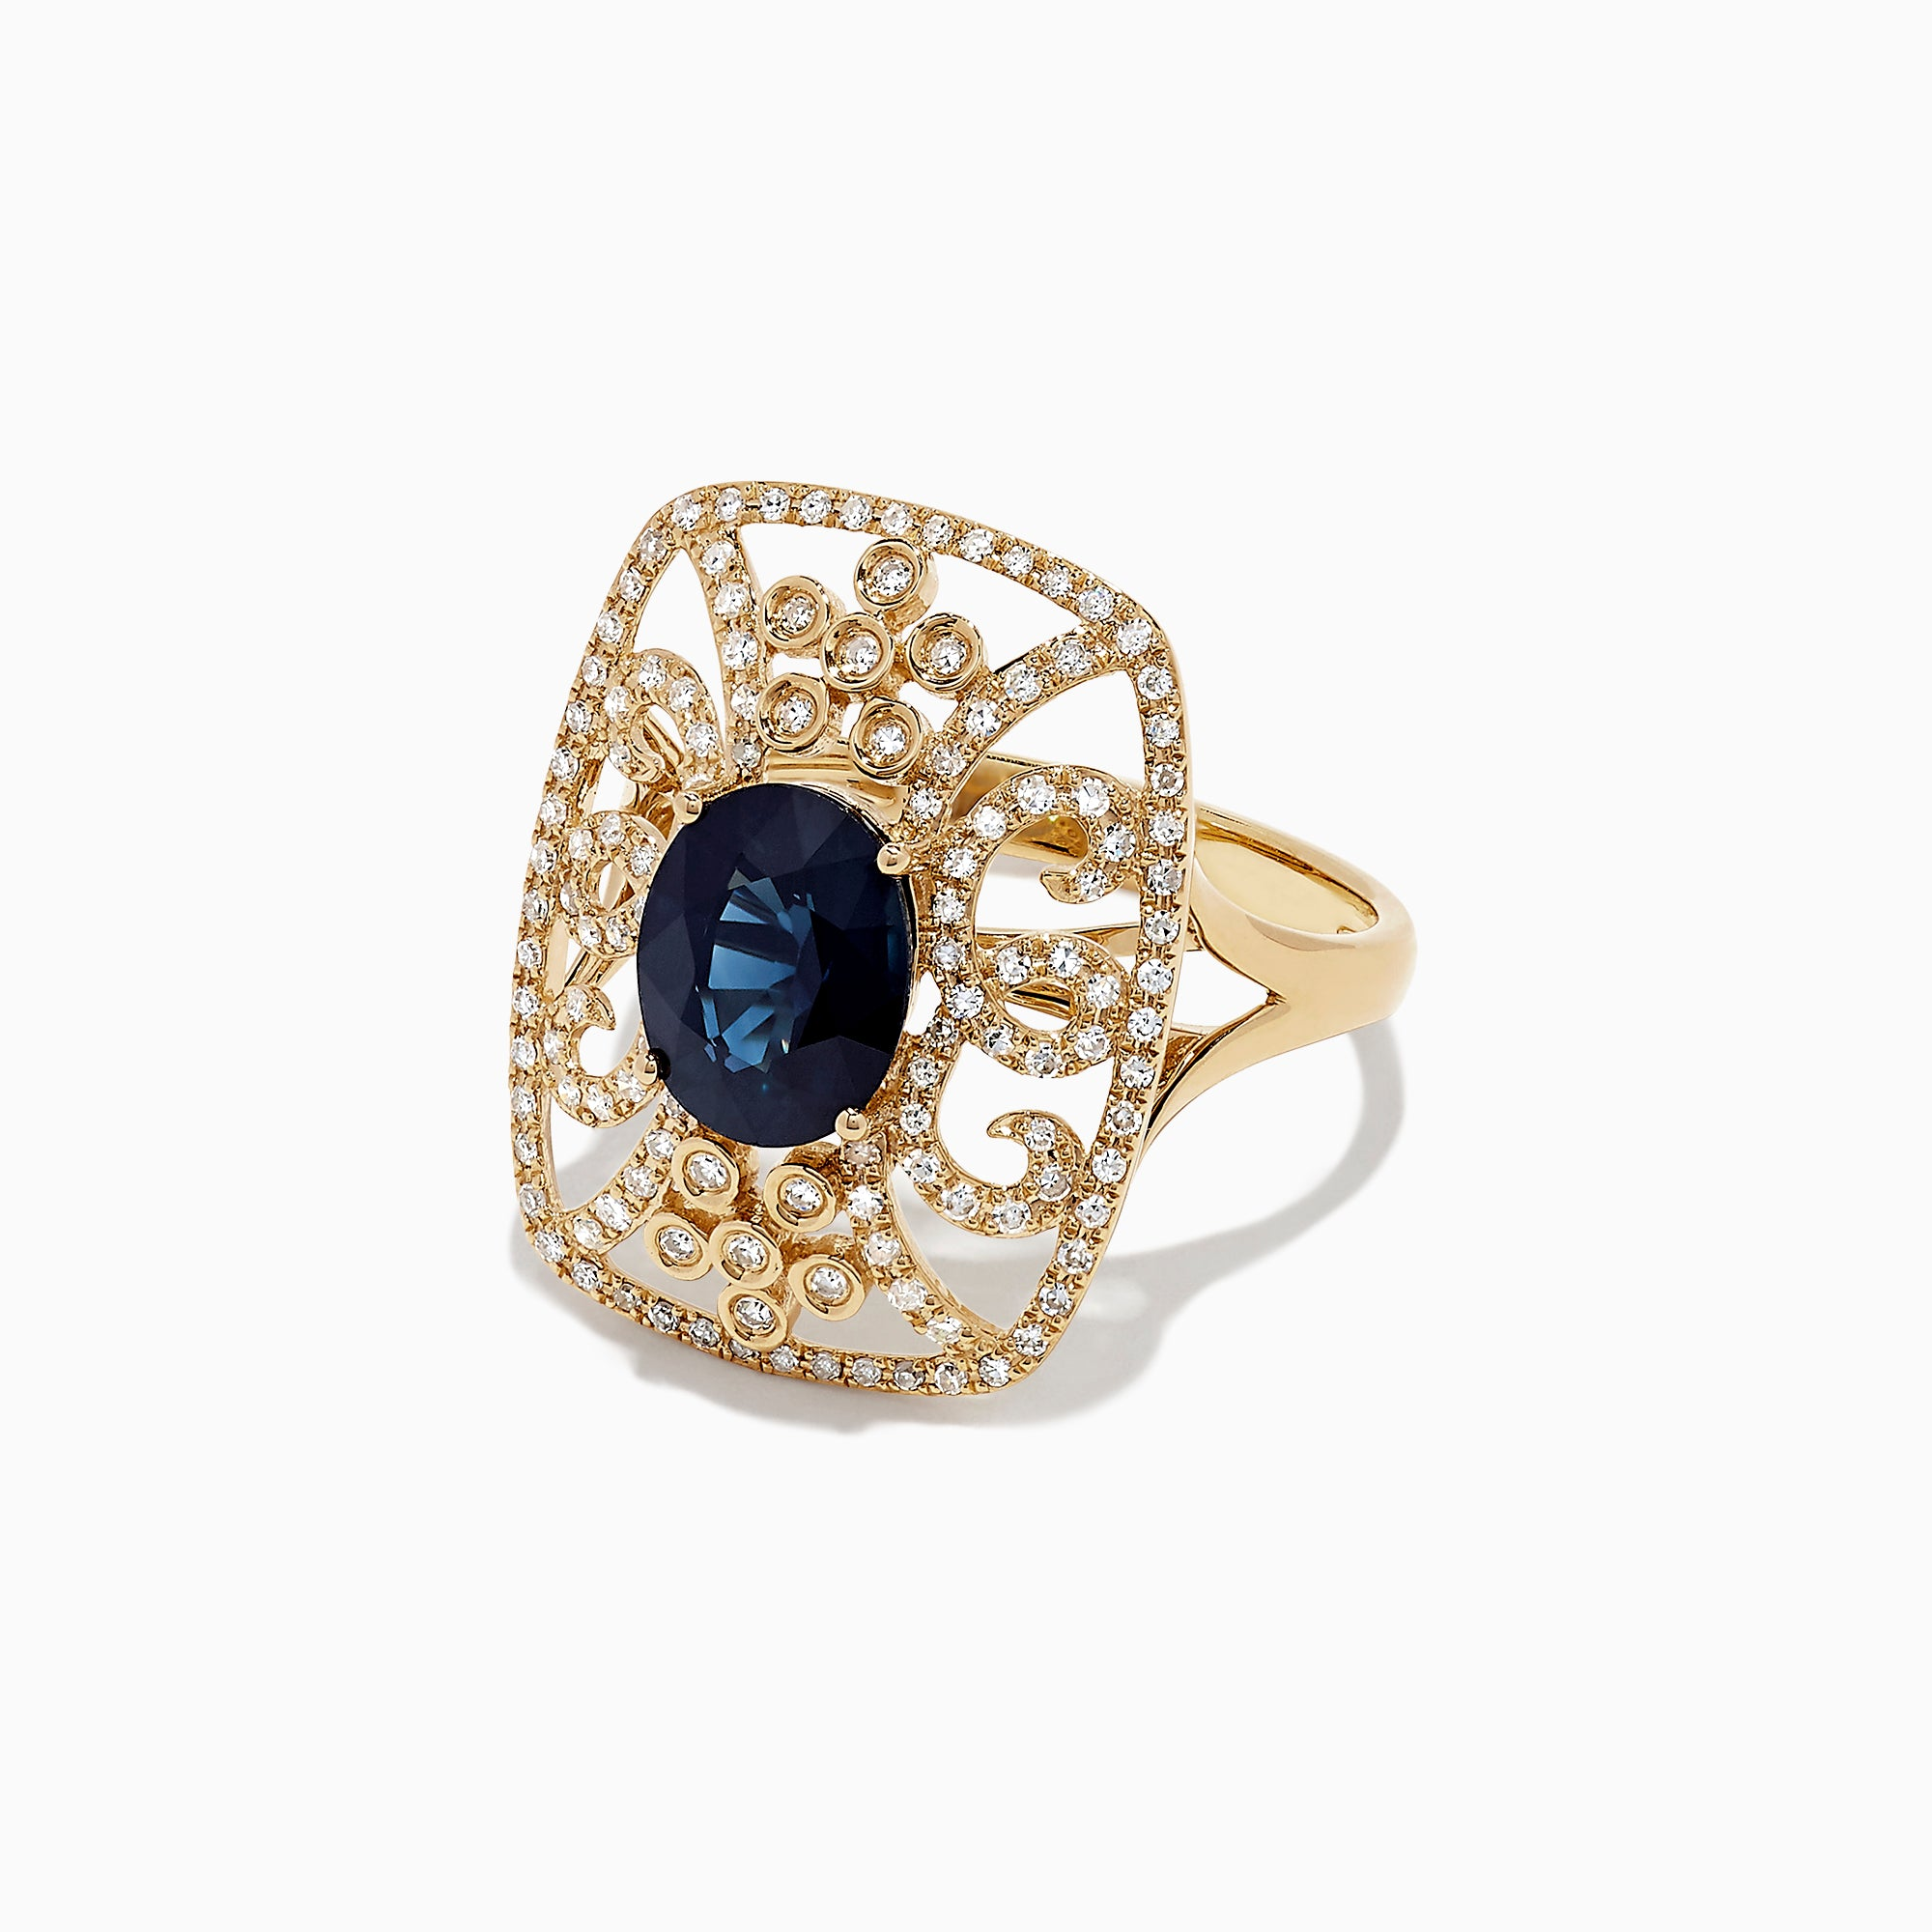 Effy 14K Yellow Gold Sapphire and Diamond Ring, 2.42 TCW